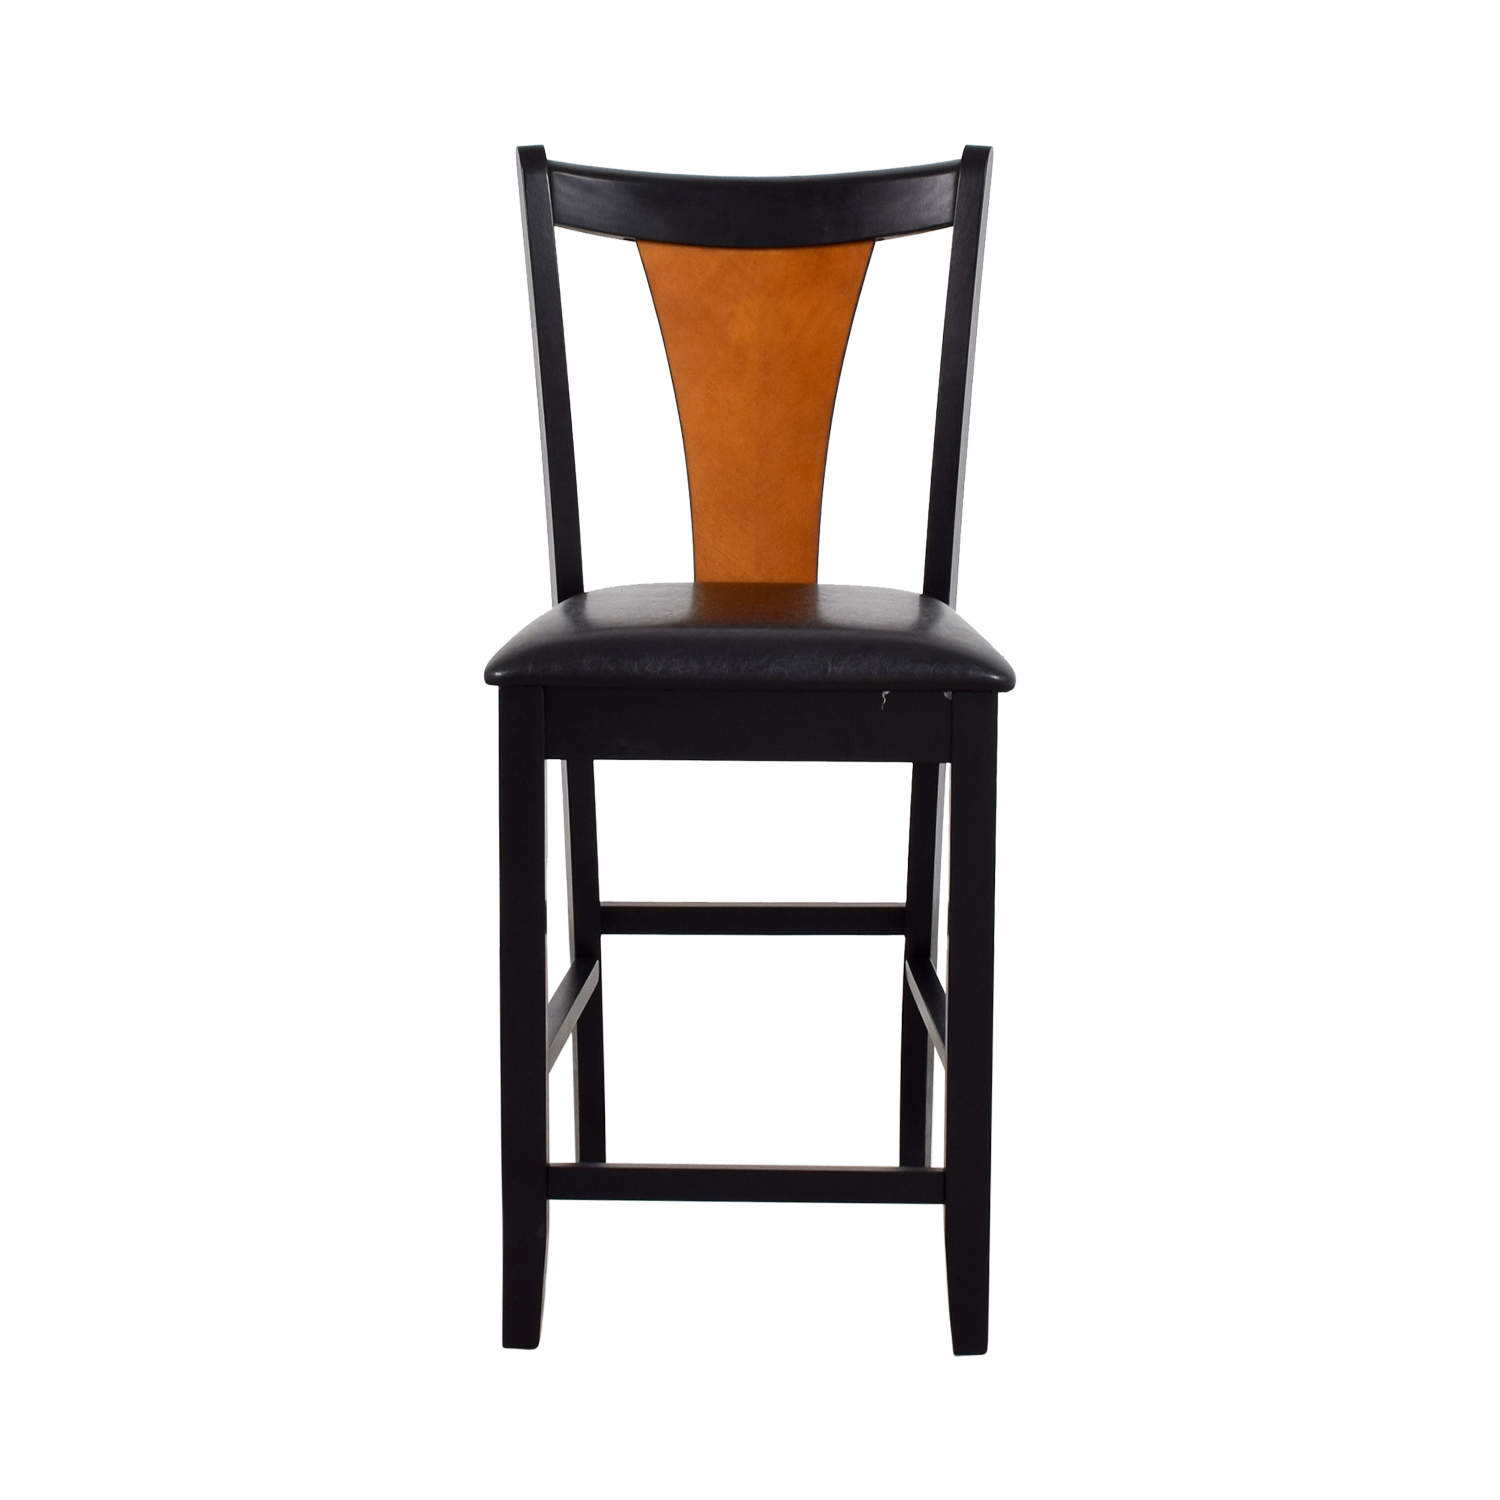 Stupendous 90 Off Coaster Fine Furniture Coaster Furniture Amber Black Finish Counter Chair Chairs Pdpeps Interior Chair Design Pdpepsorg